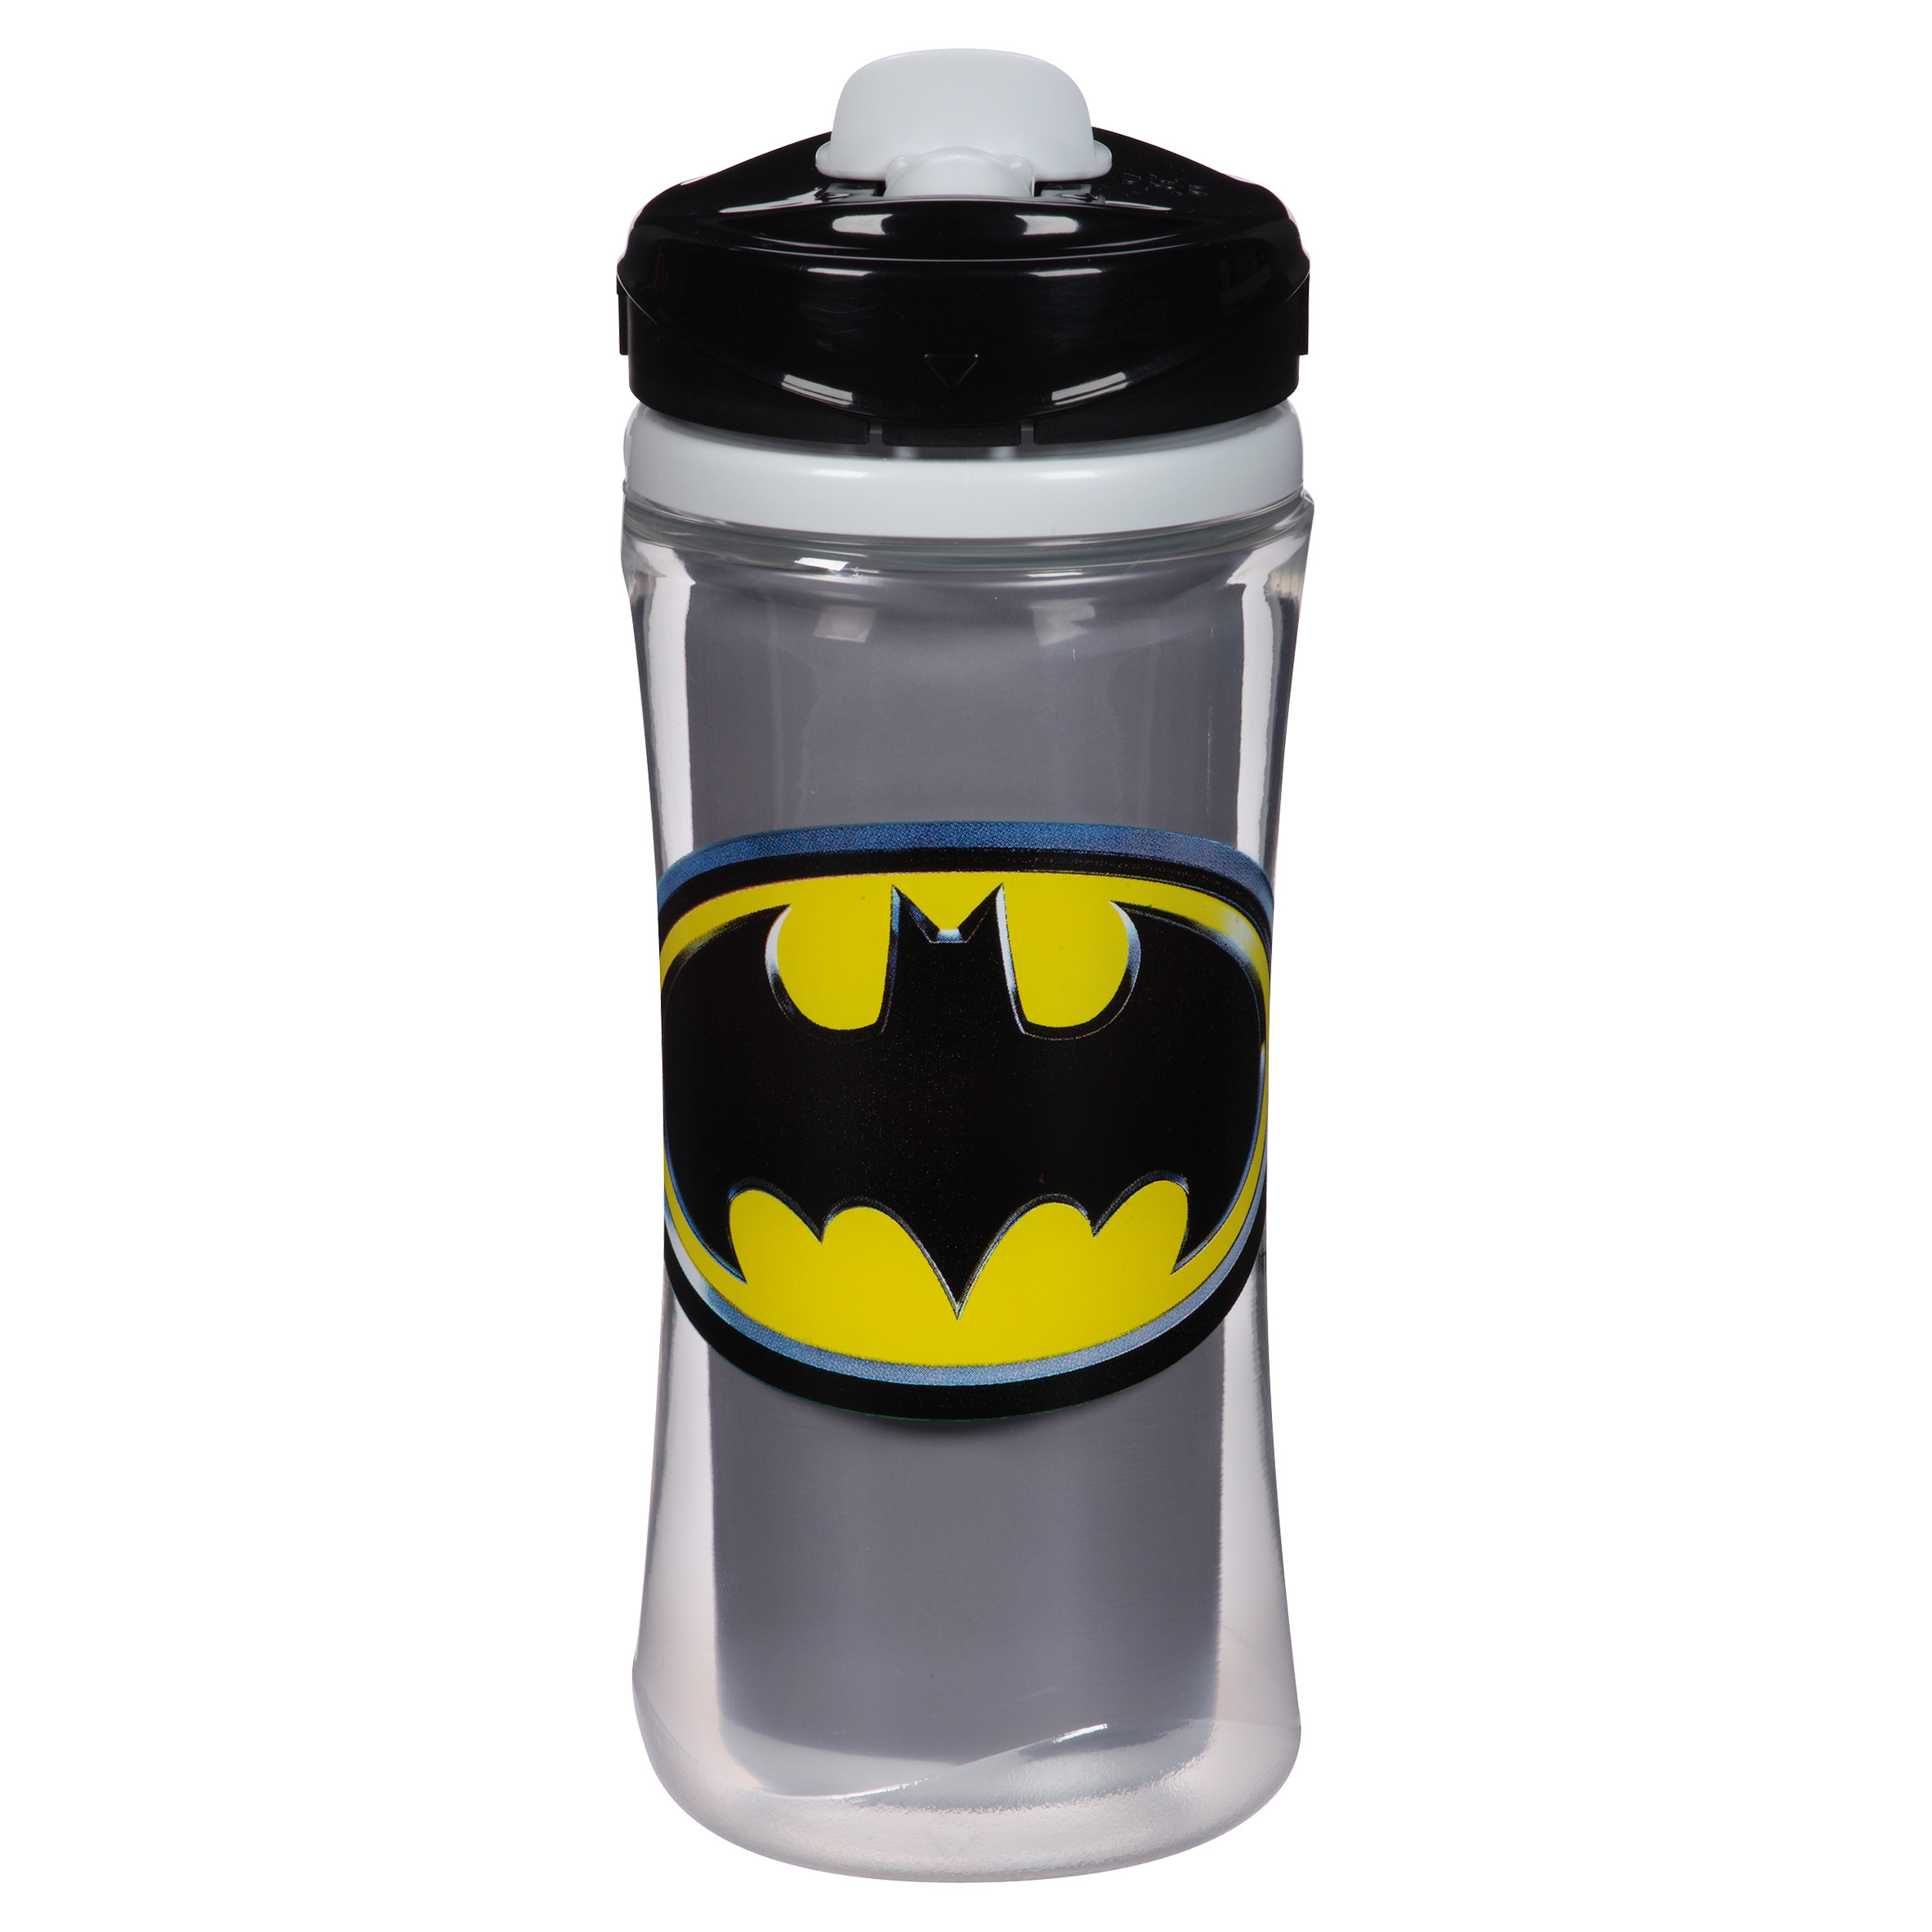 Playtex Sipsters Batman Stage 4 Insulated Sport Spout Sippy Cup 12oz 1-Pack Assorted Patterns